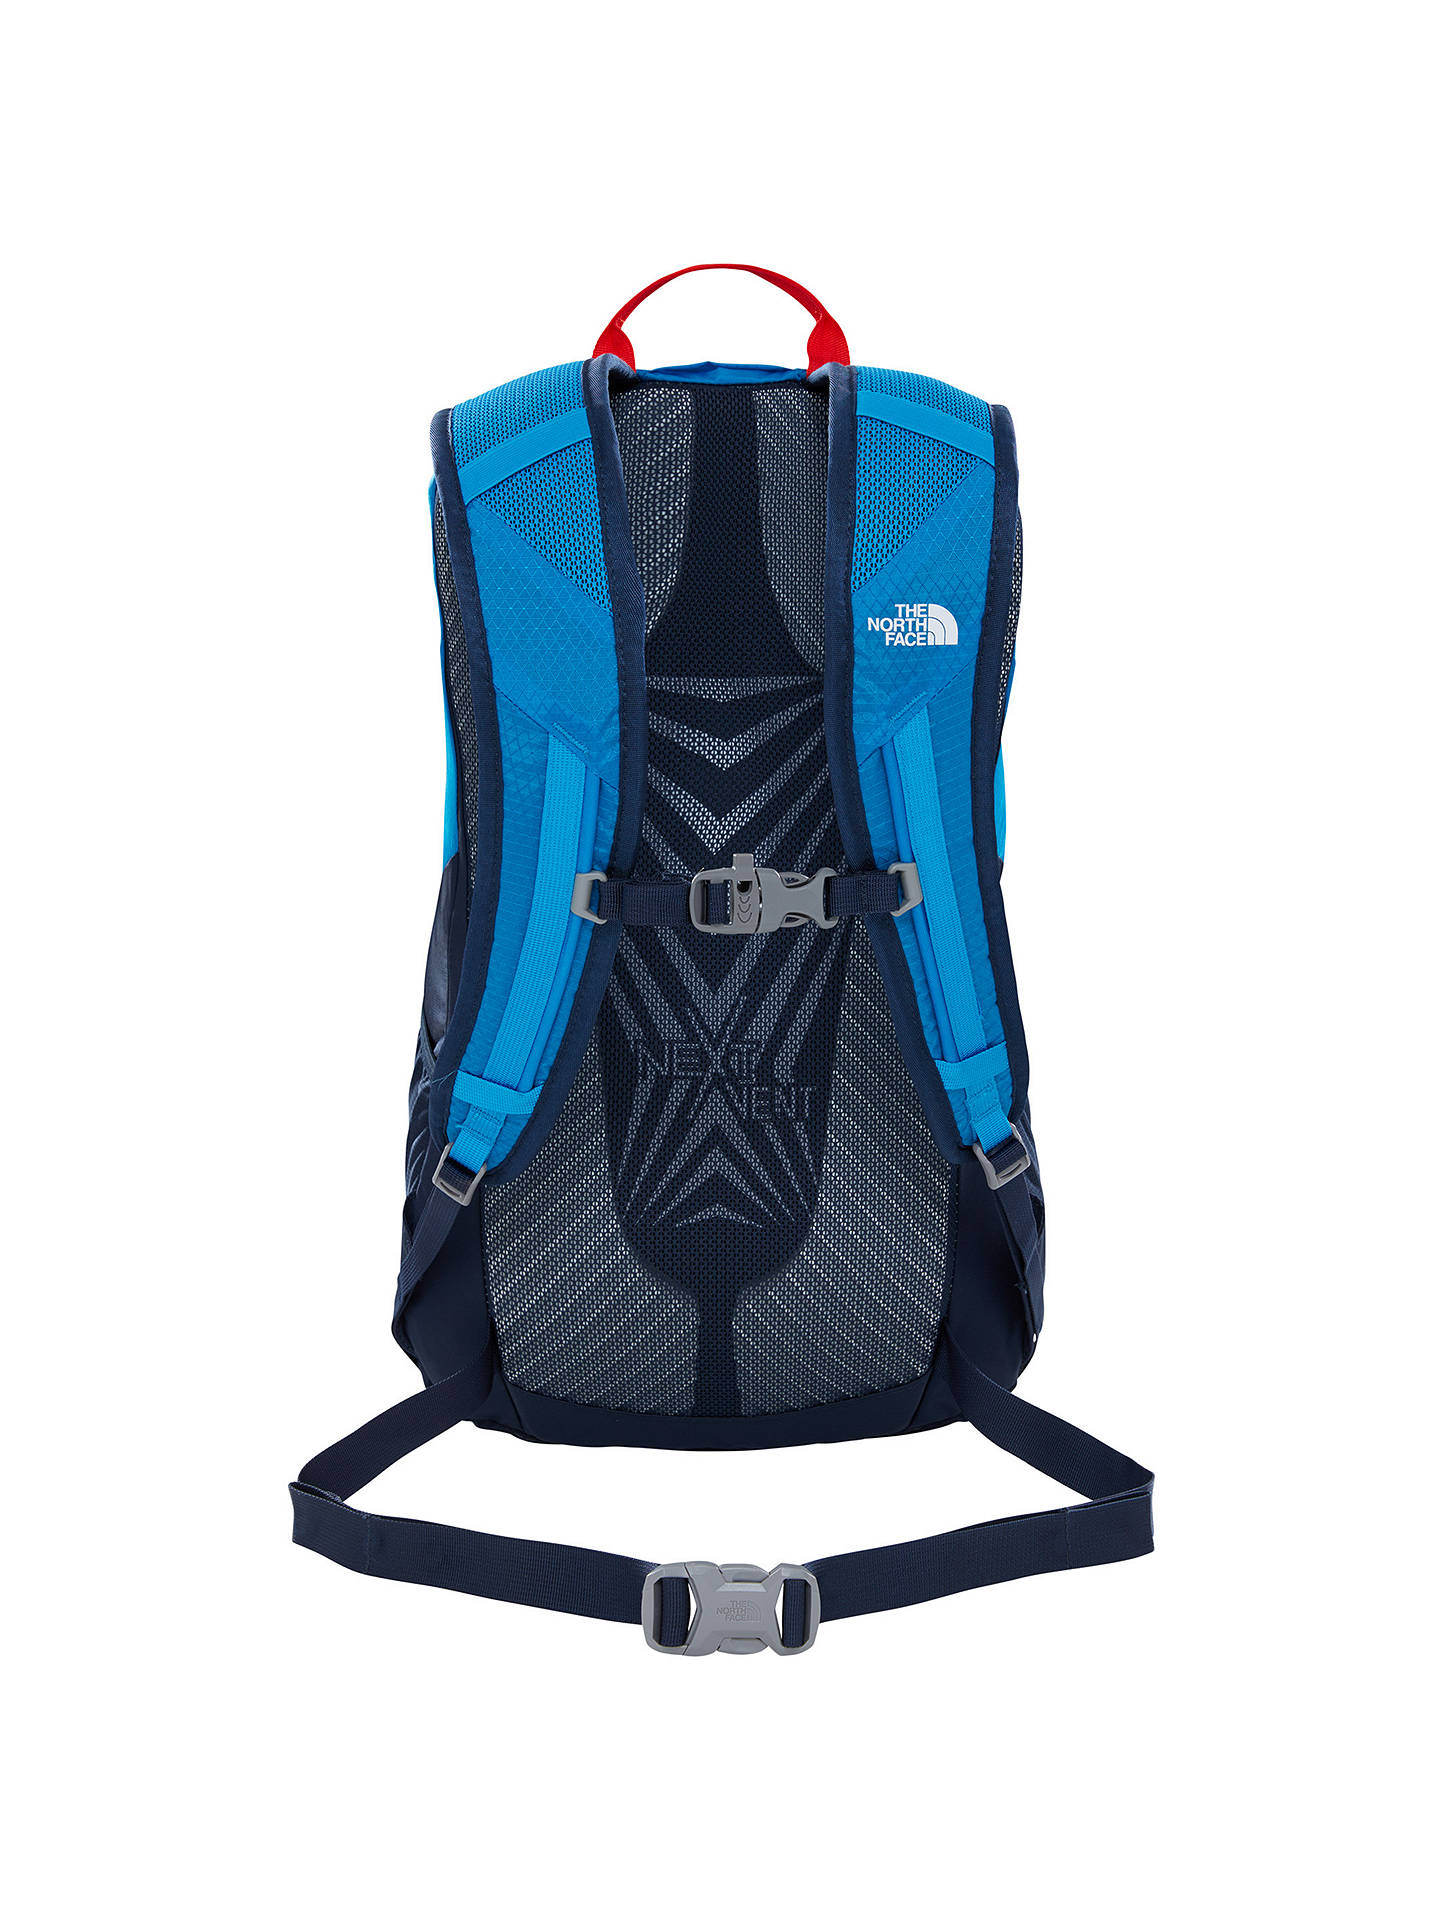 356ce4976 The North Face Kuhtai 18 Backpack, Blue at John Lewis & Partners